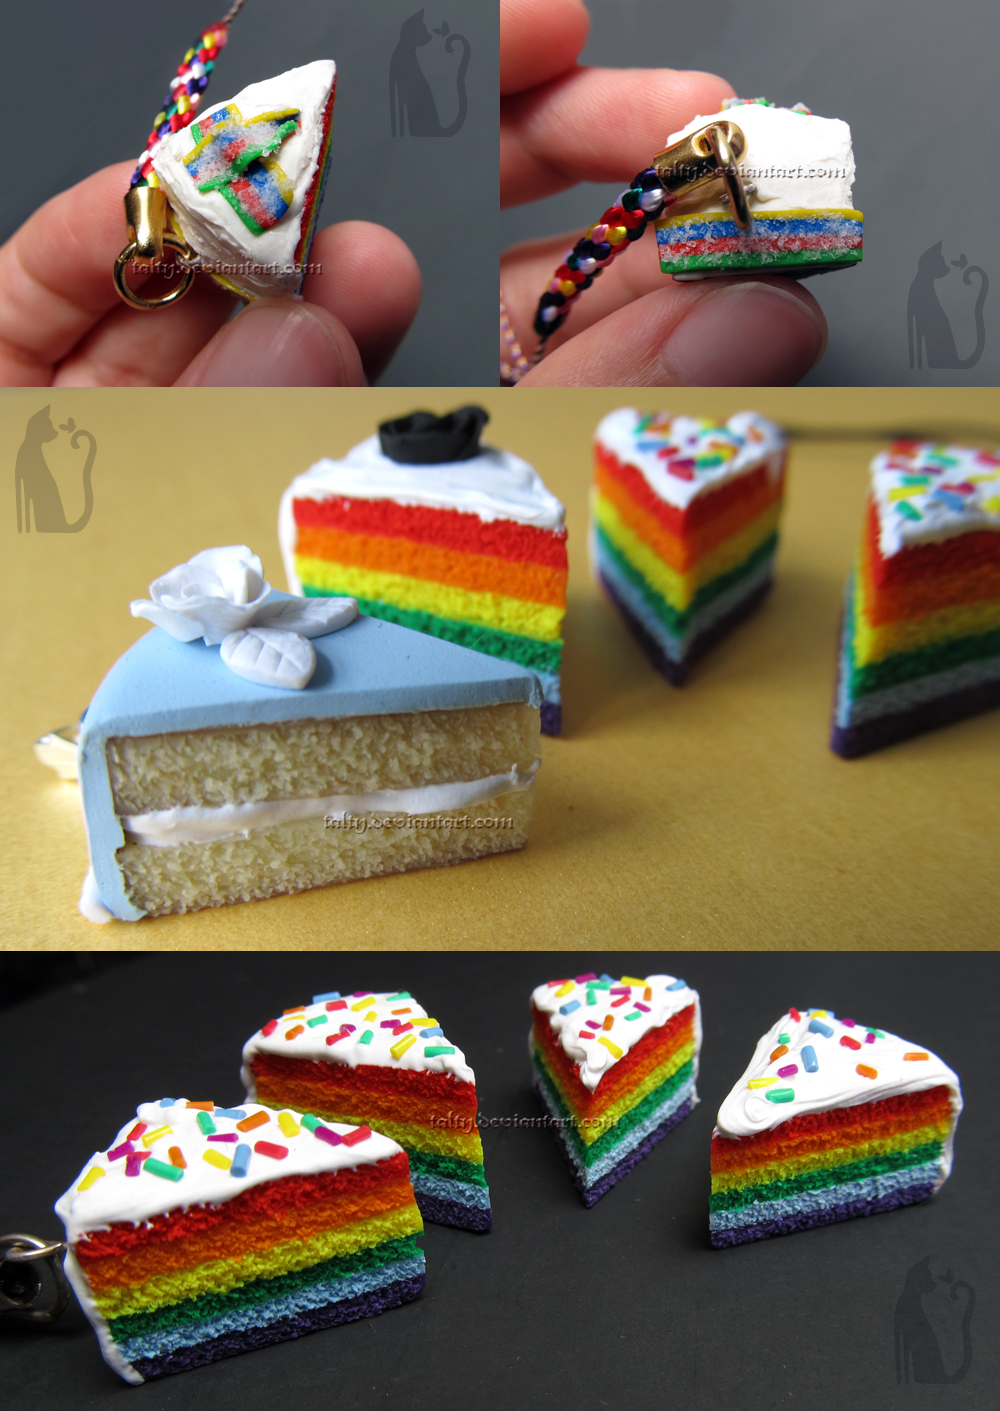 Rainbow Cakes by Talty